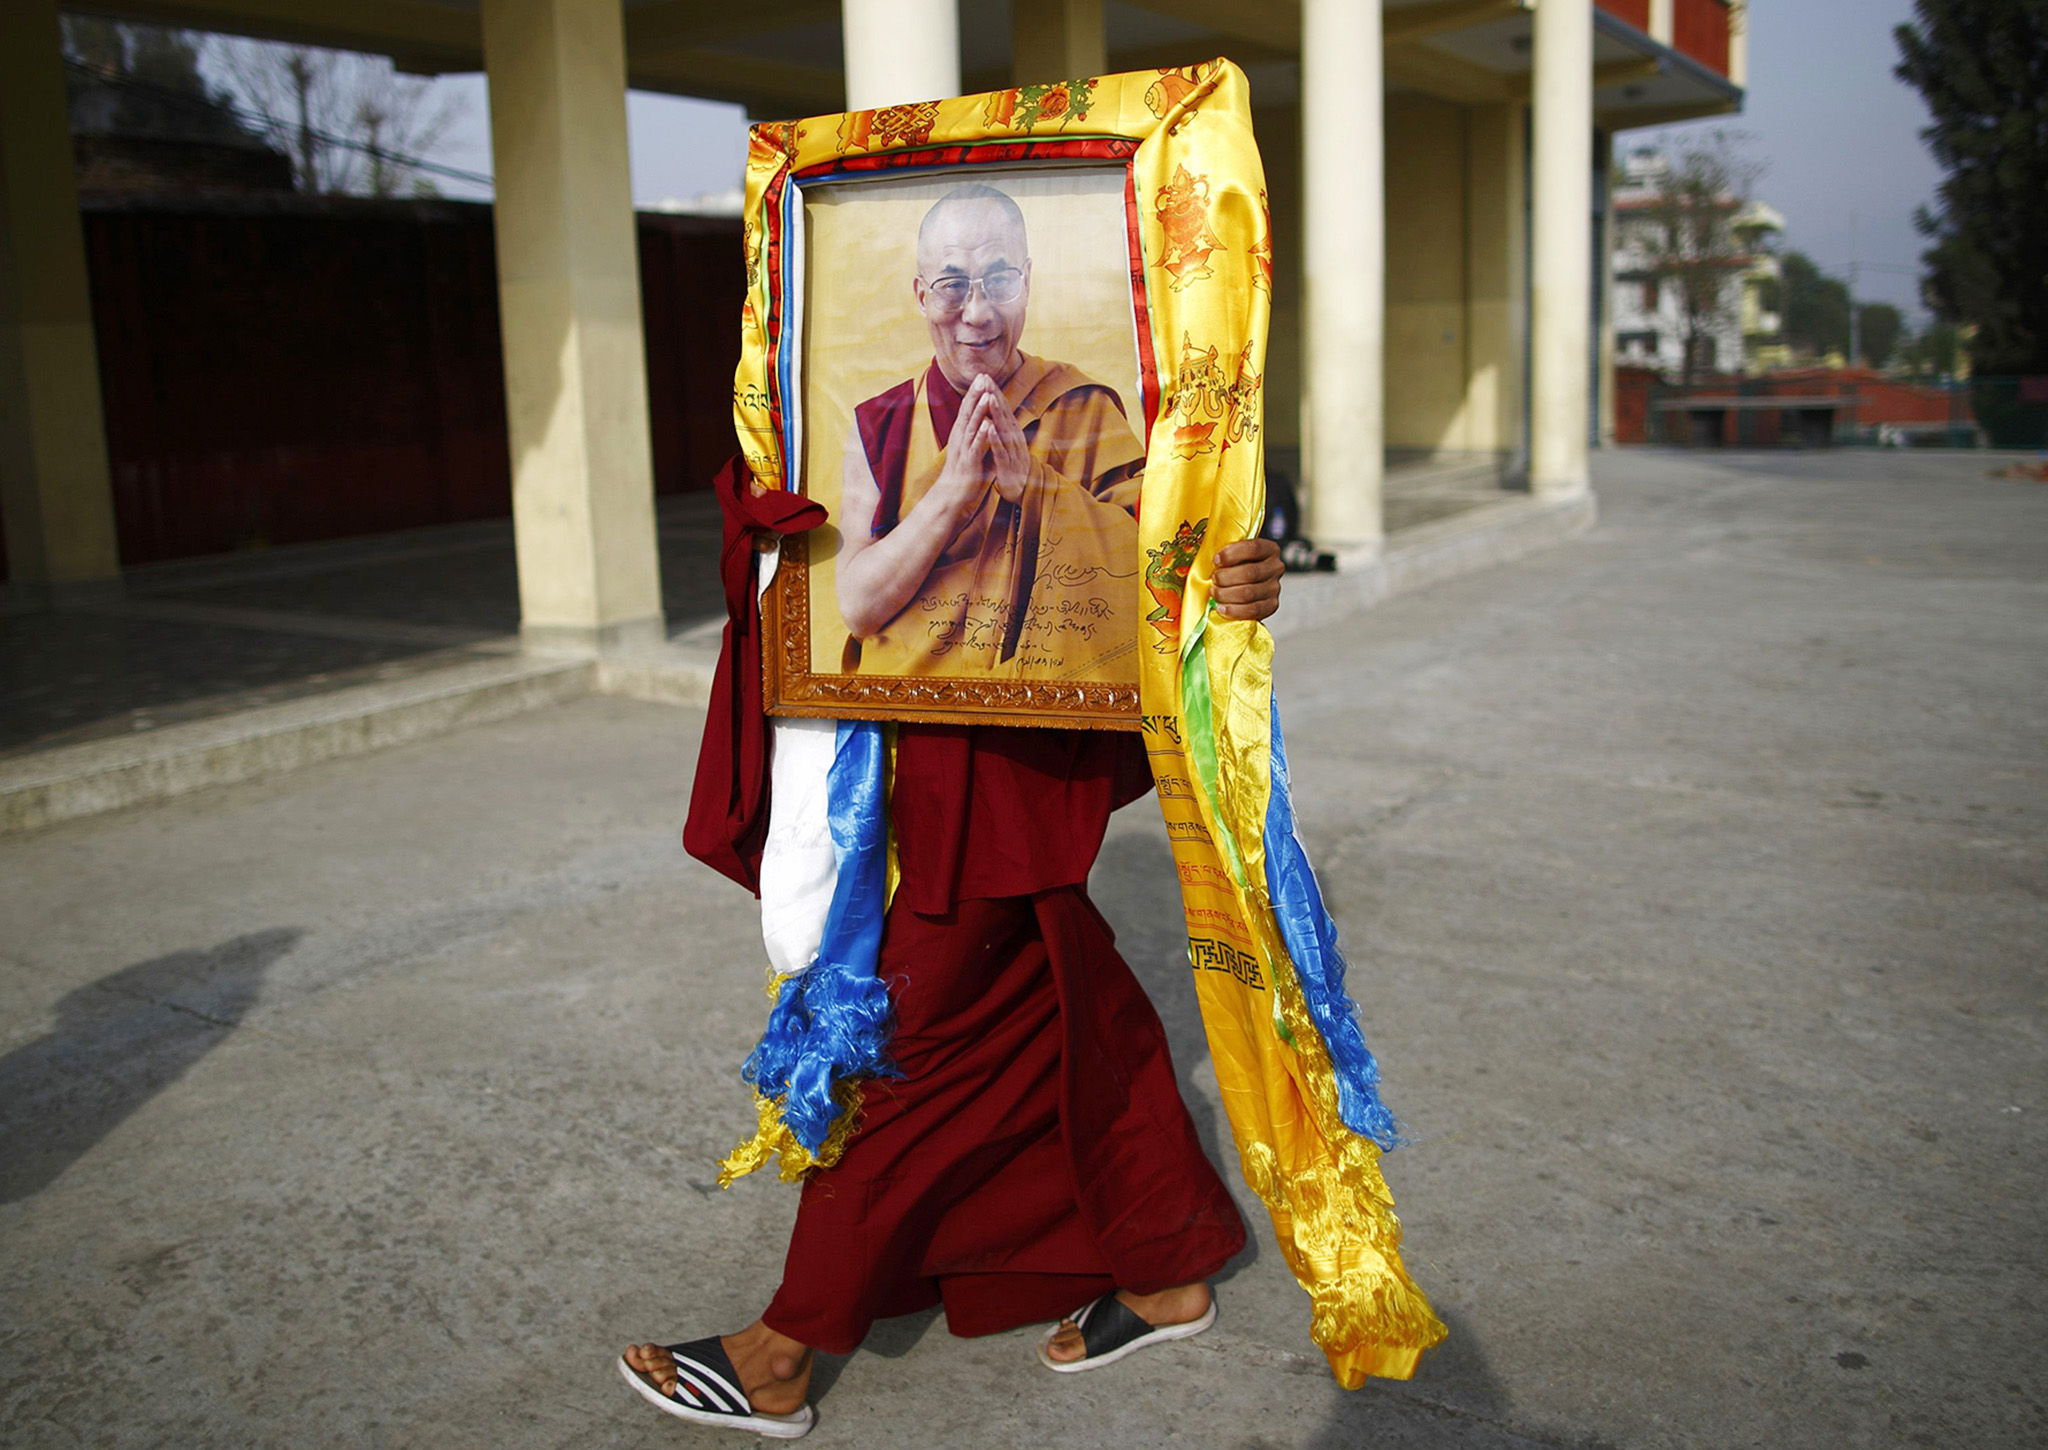 A Tibetan monk carries a portrait of the Dalai Lama during Losar celebrations in Kathmandu